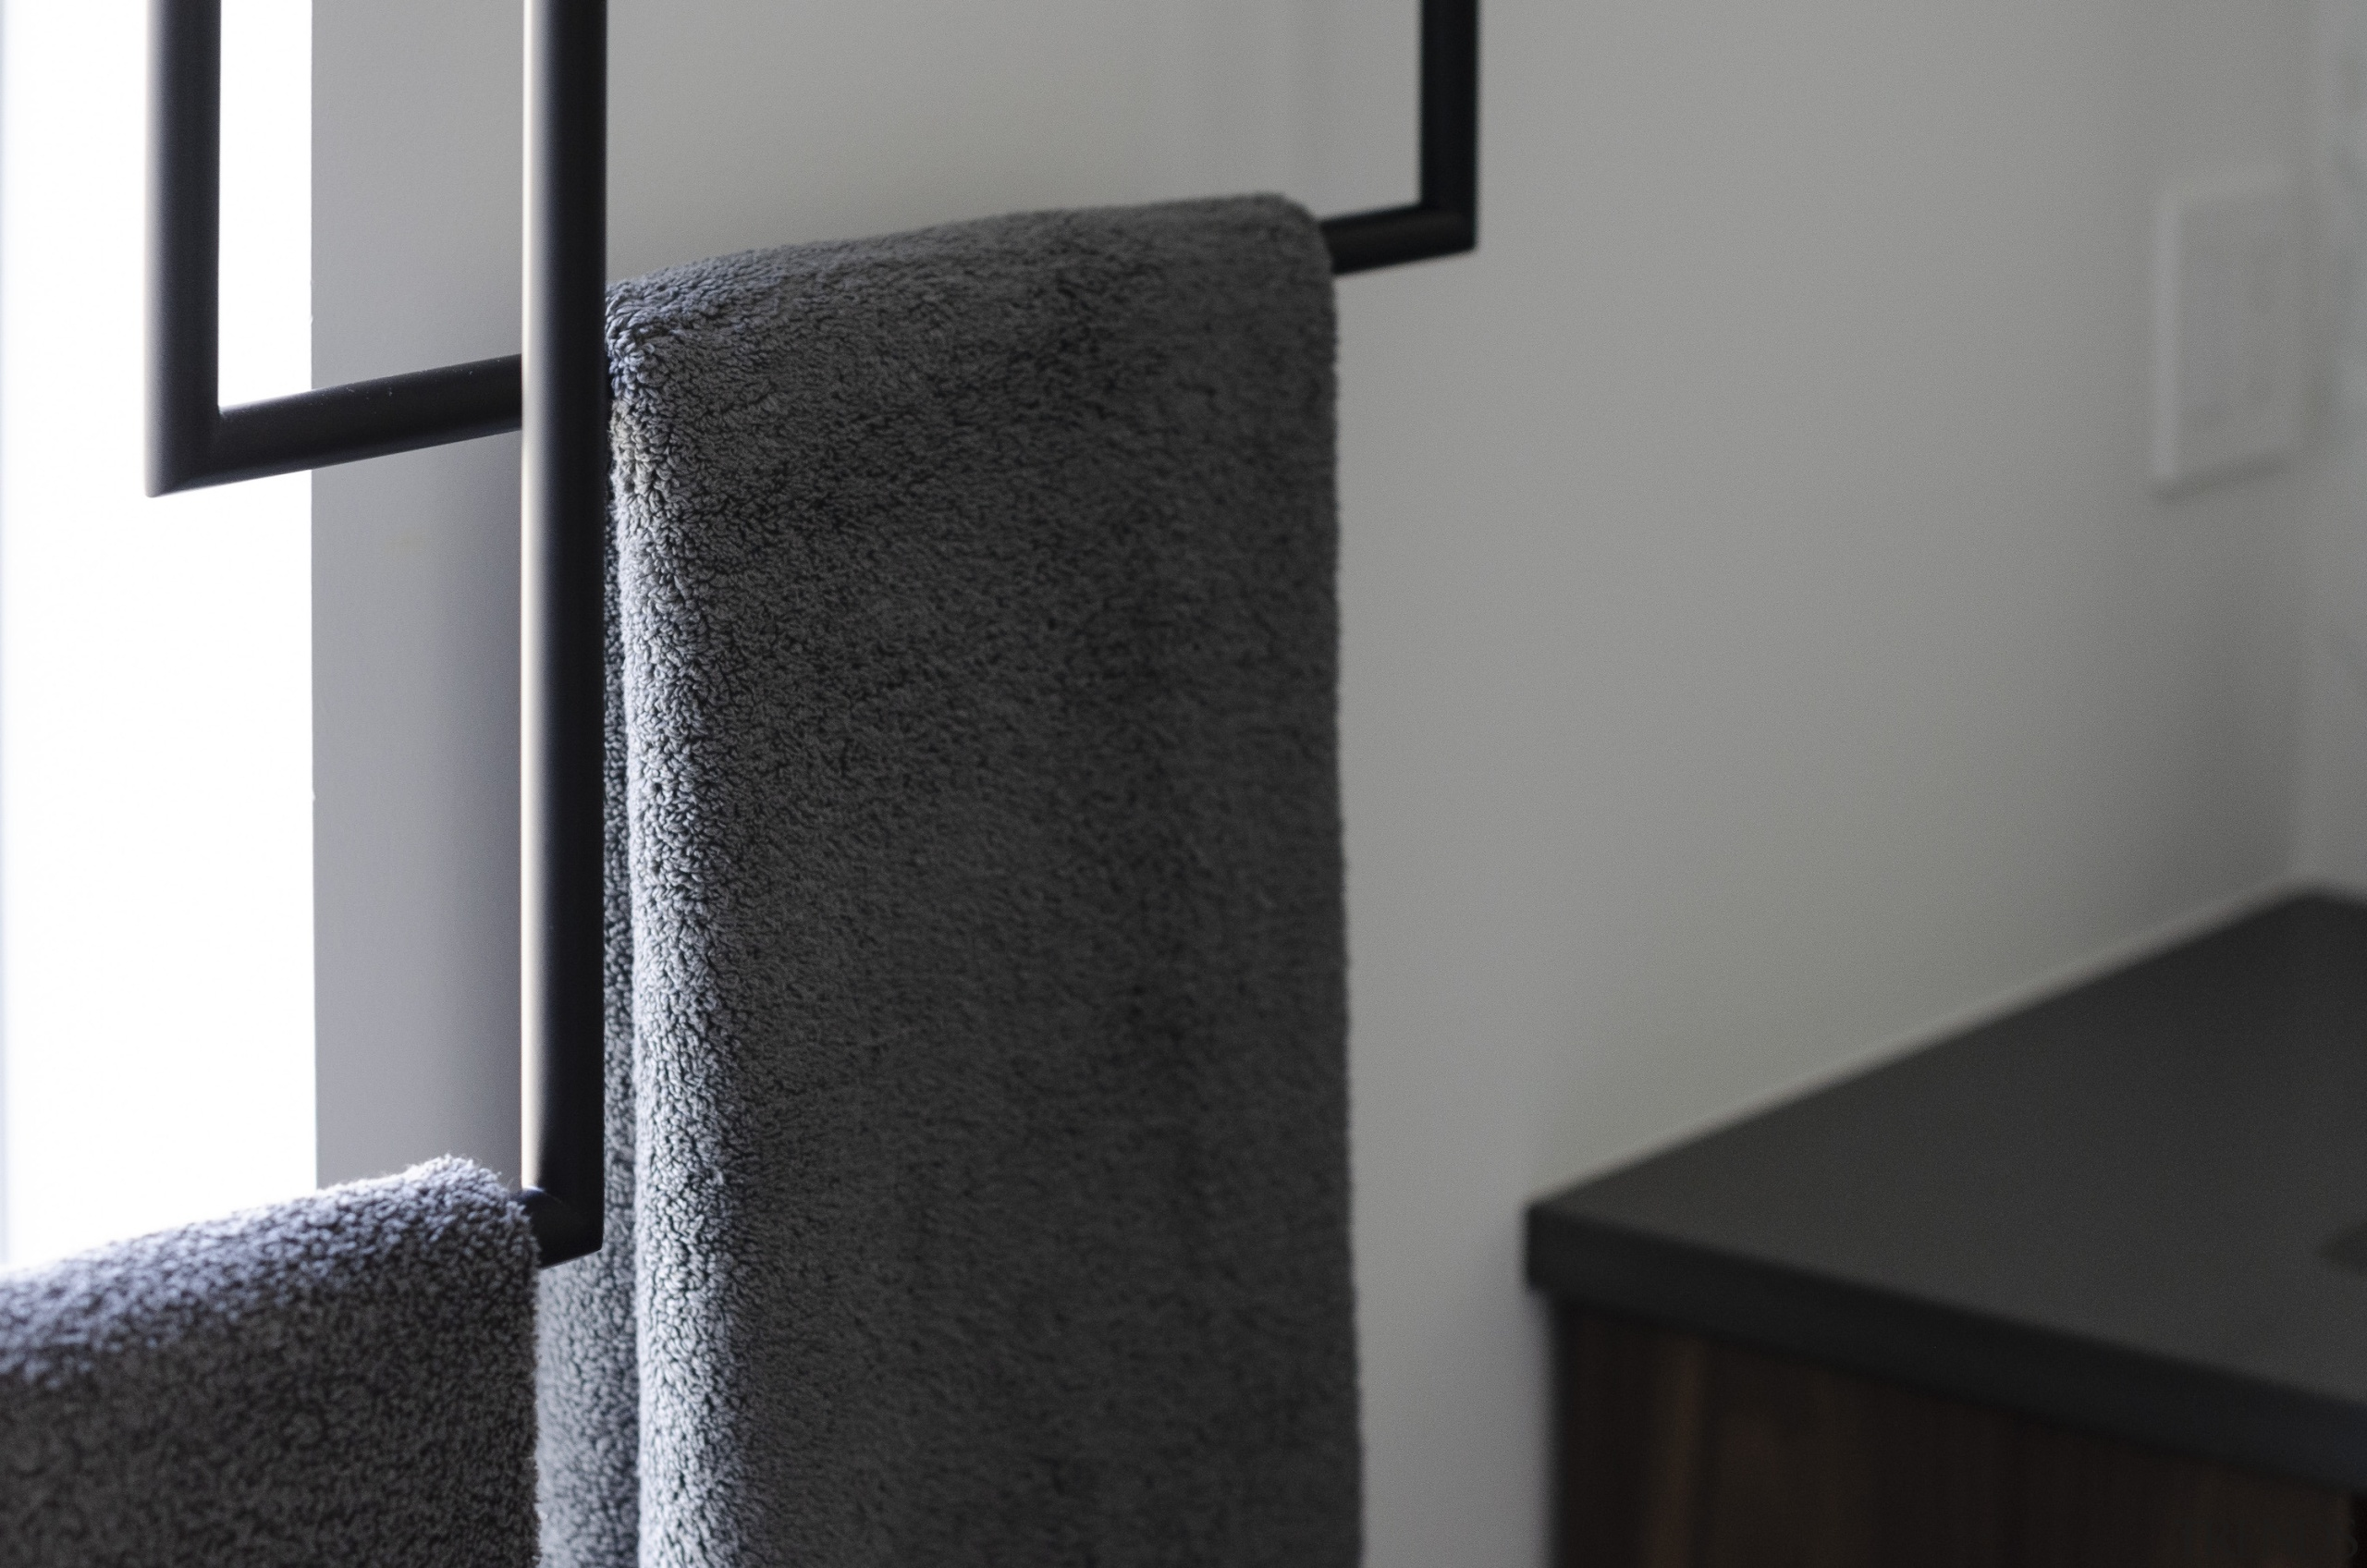 The ceiling mounted towel bars were custom designed